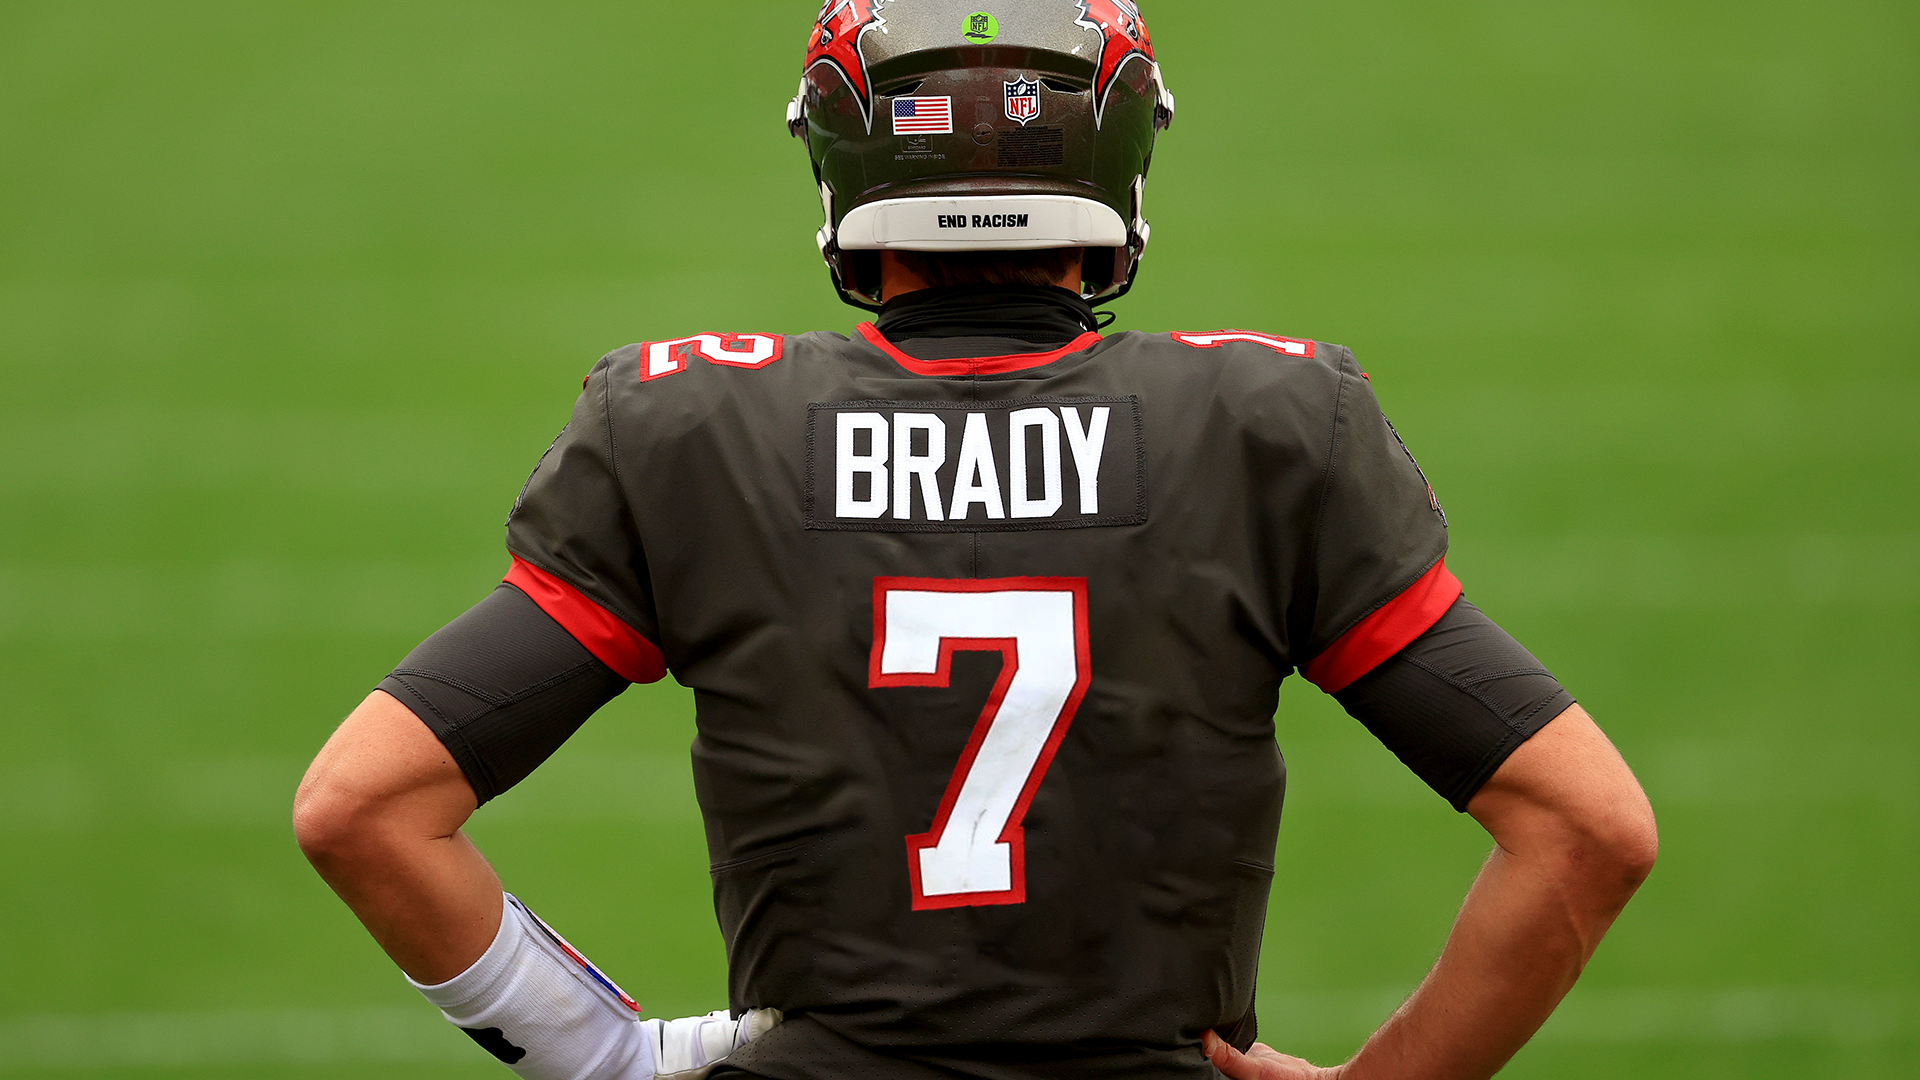 Tom Brady was willing to change his jersey number to 7 with the ...